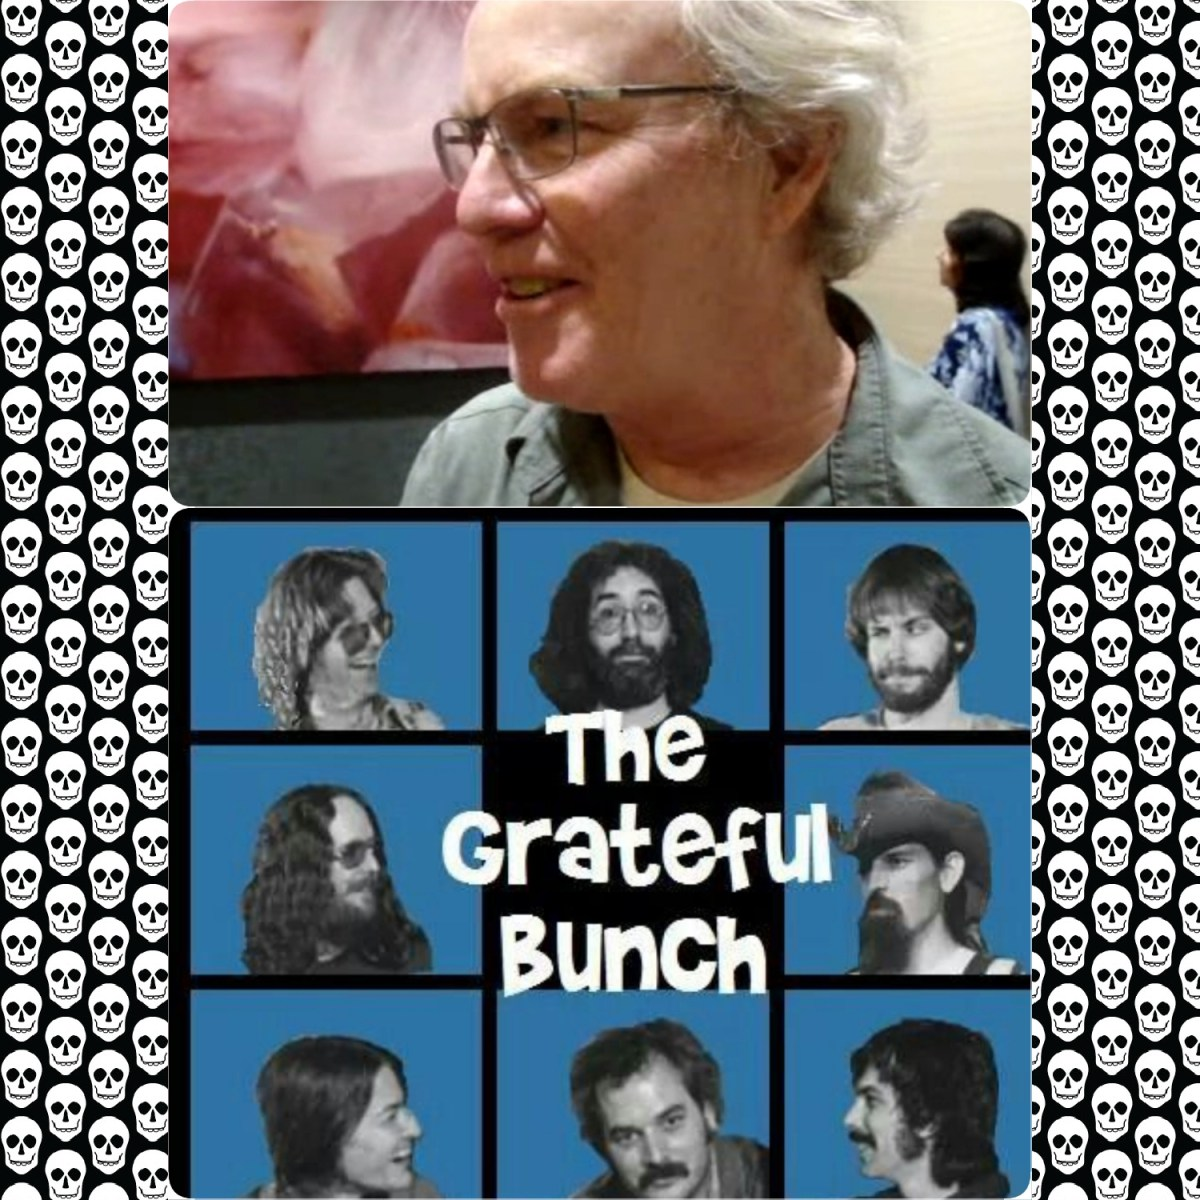 It's the story of Bobby Brady, and his history seeing the Grateful Dead | Mike Lookinland: Deadhead.